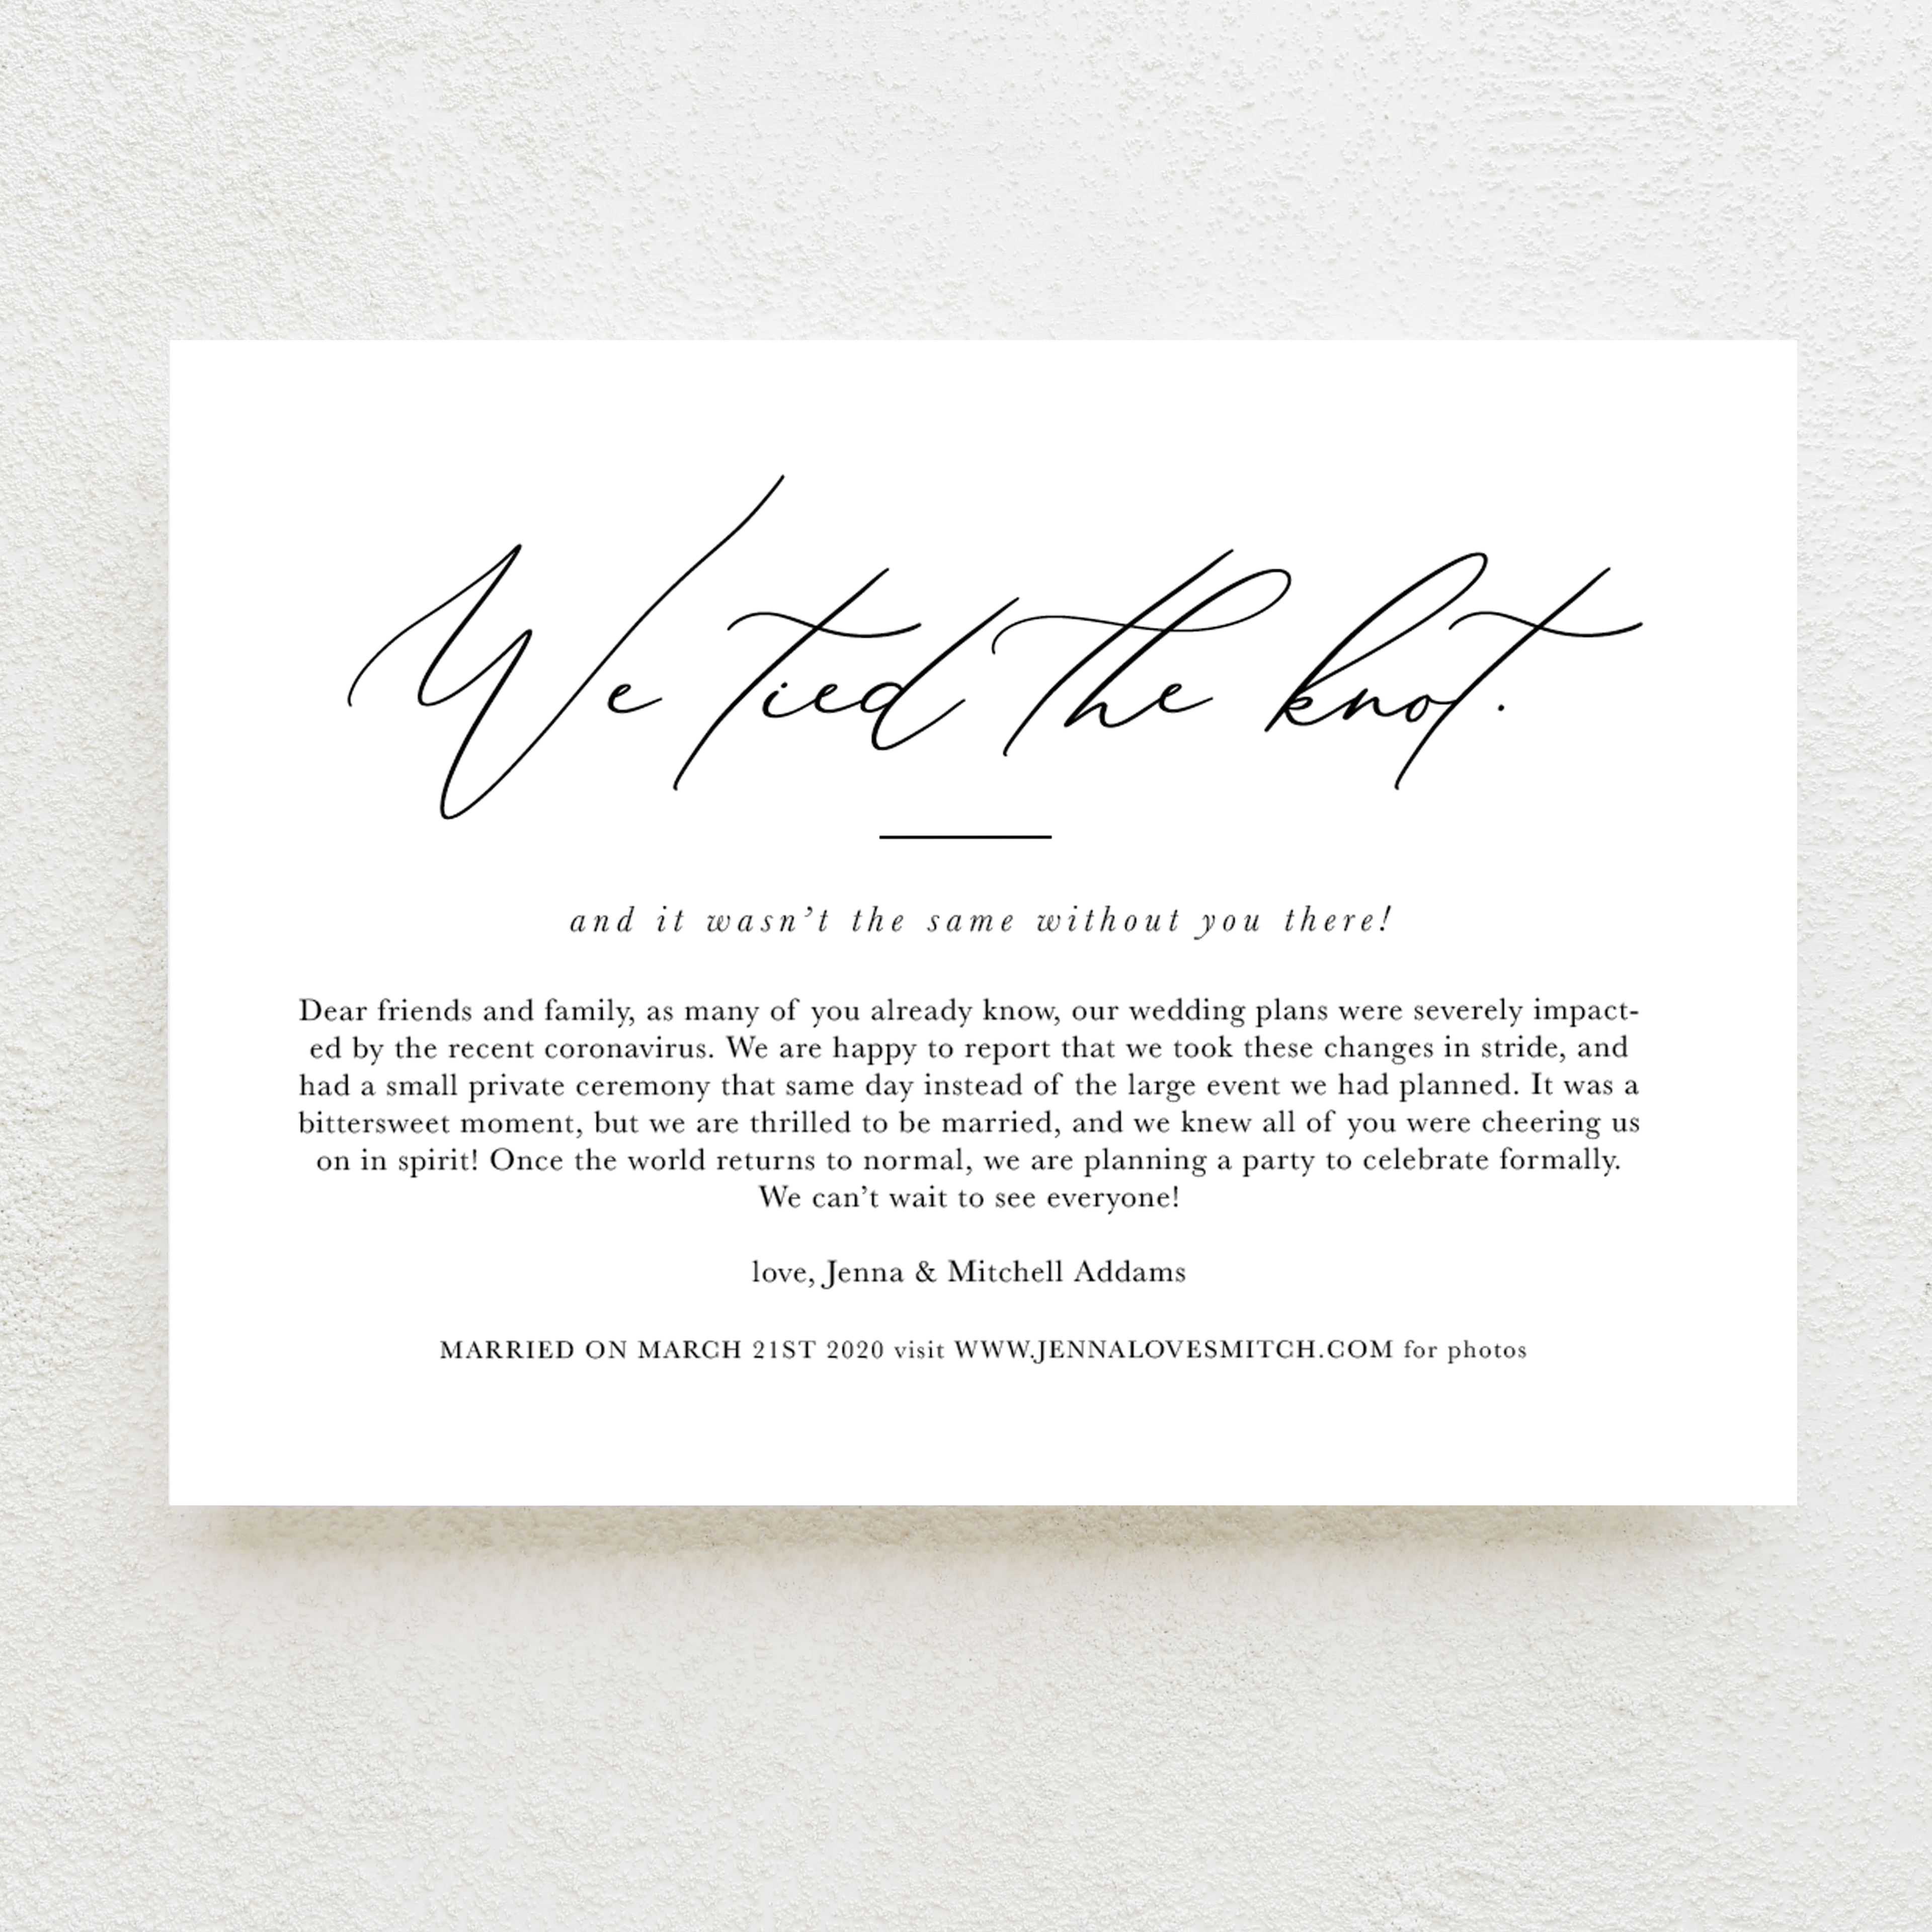 Lovely Letter Elopement Announcements Wedding Photography Funny Wedding Invitations Photography Hin Elopement Announcement Wedding Announcement Cards Marriage Announcement